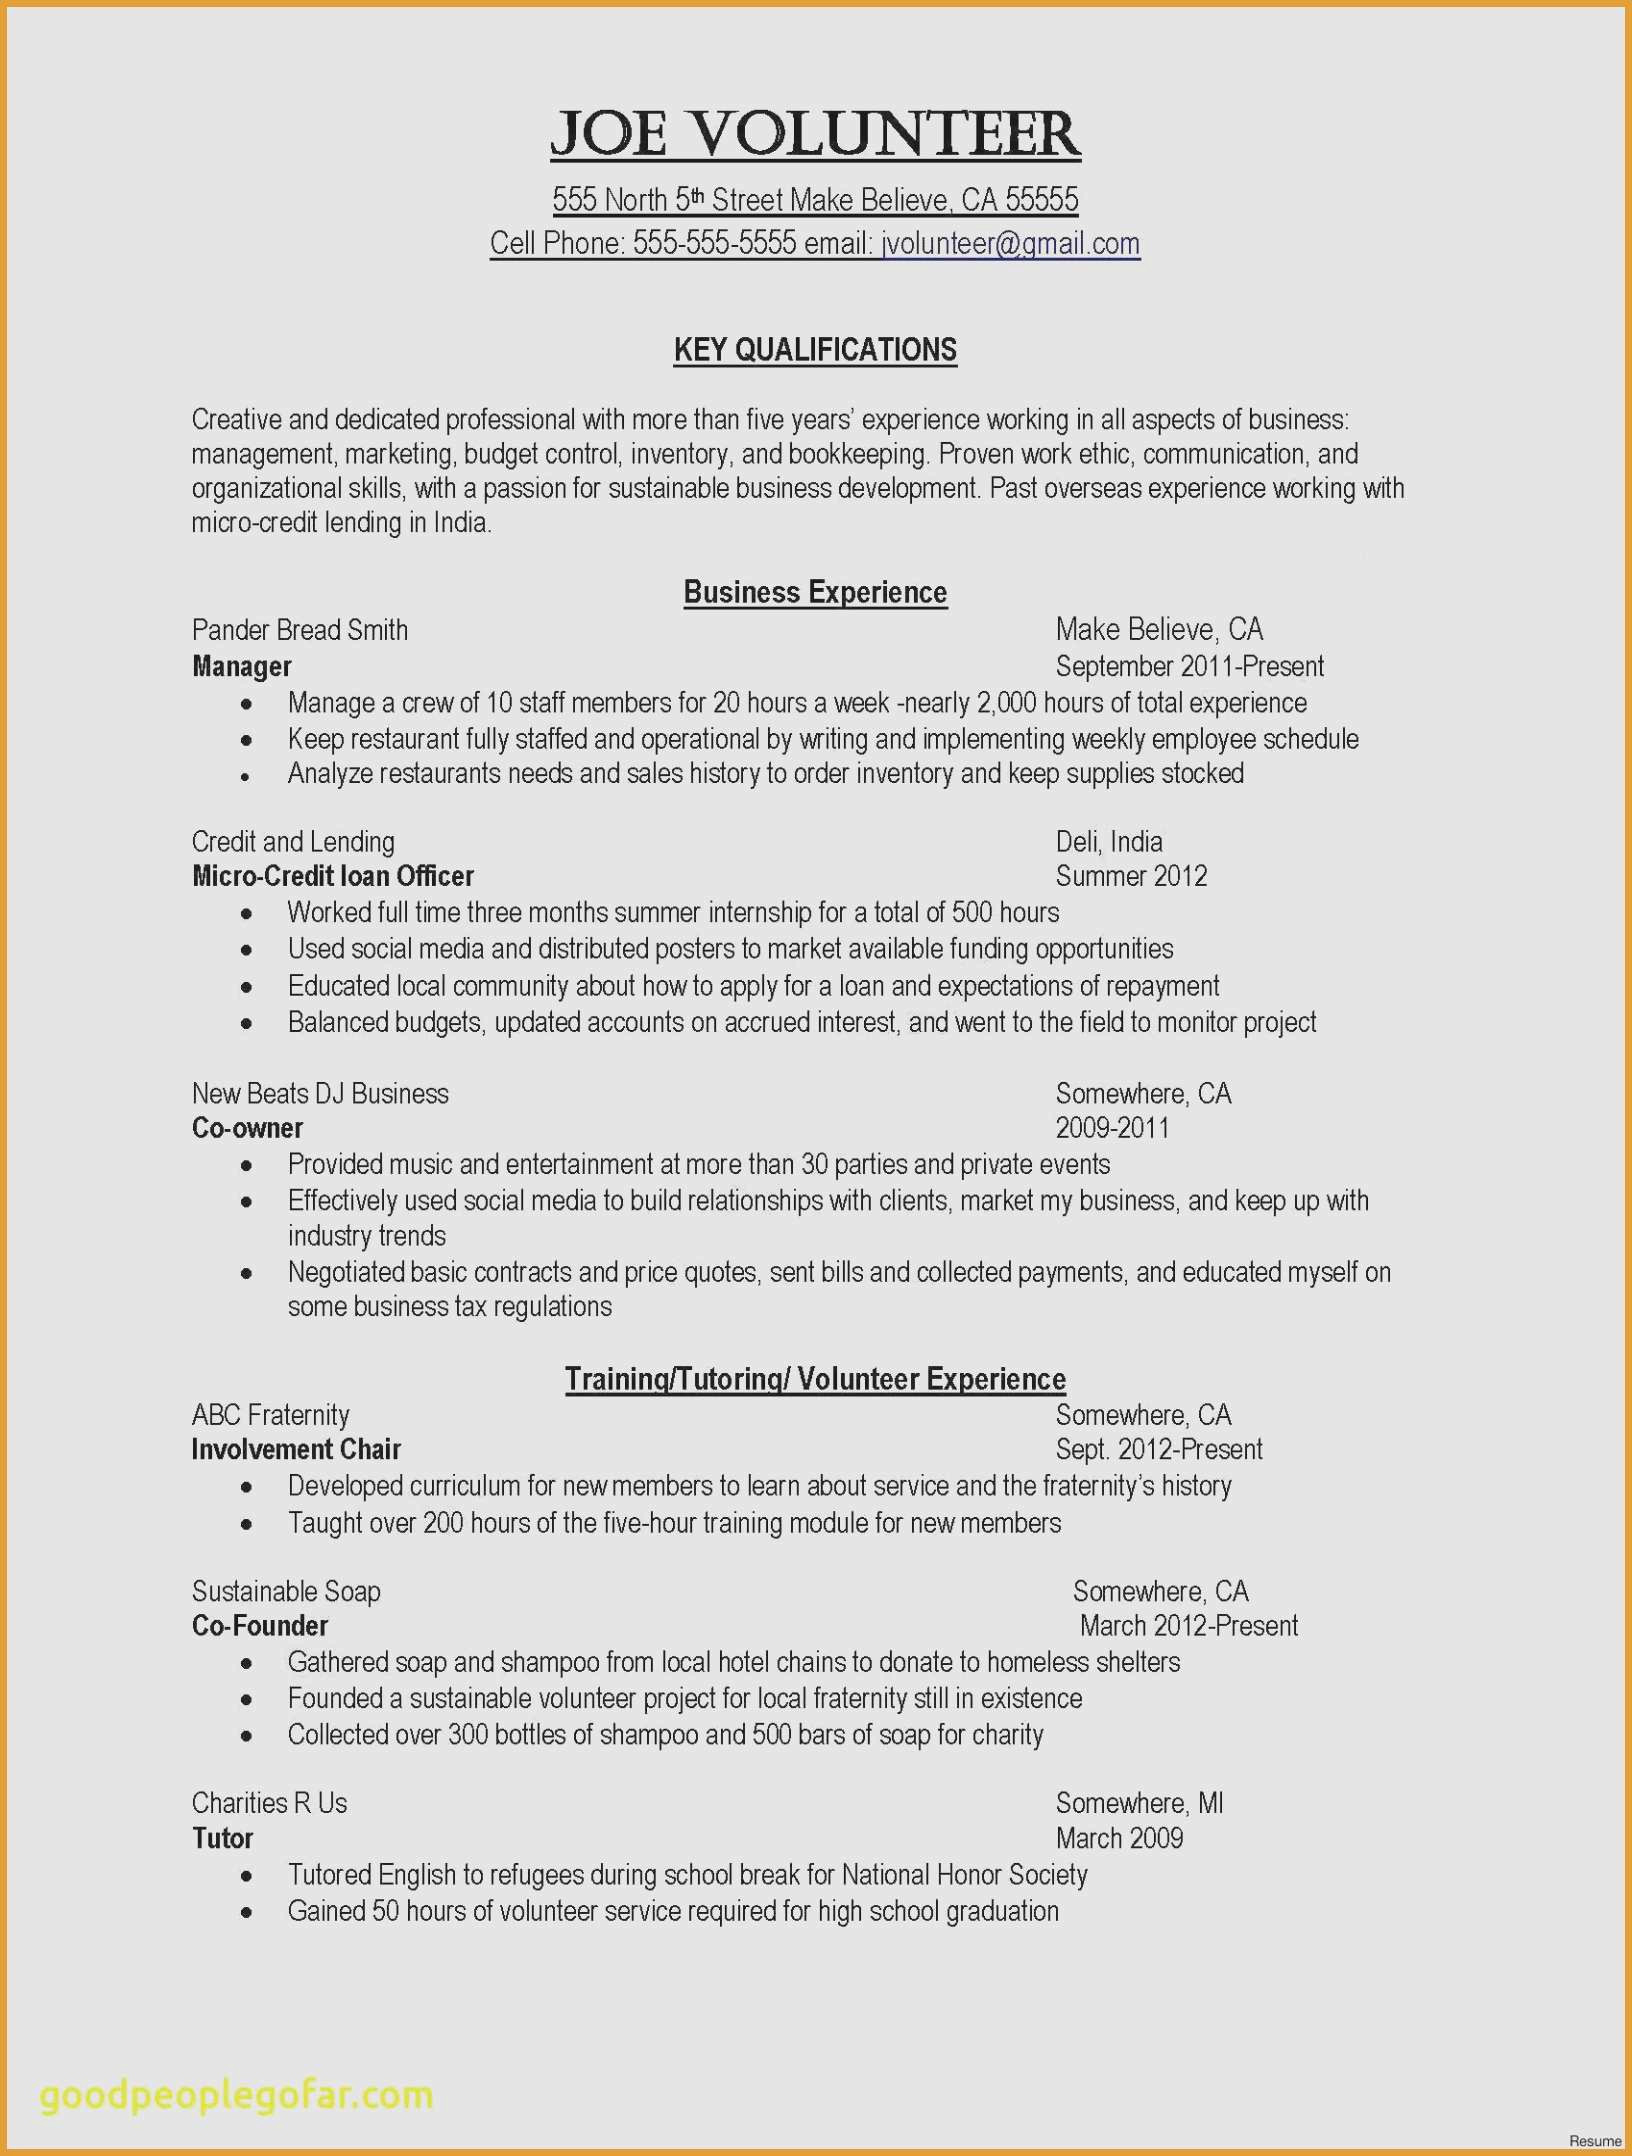 Bookkeeping Duties On Resume - 37 Fresh Examples Resumes for Jobs